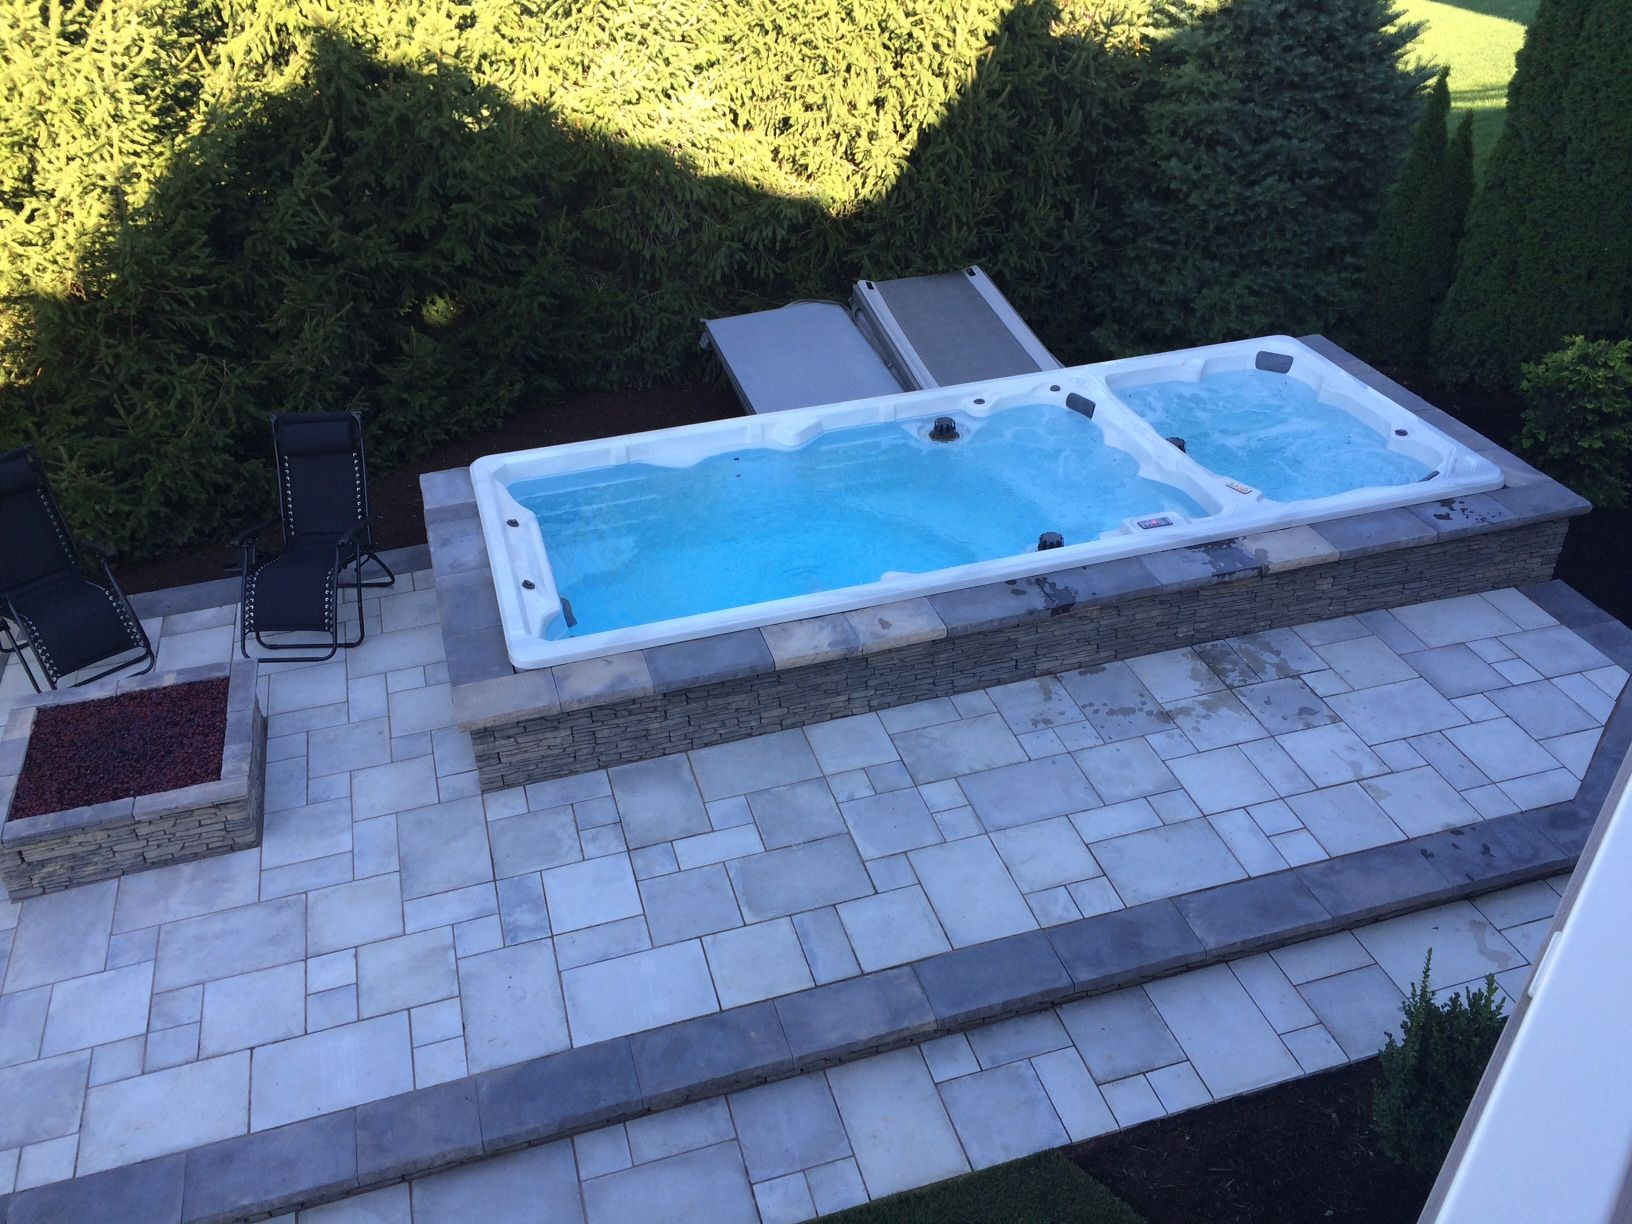 Hss19 Honey Swim Spa Build In To A Stone Patio Contact Us To Find